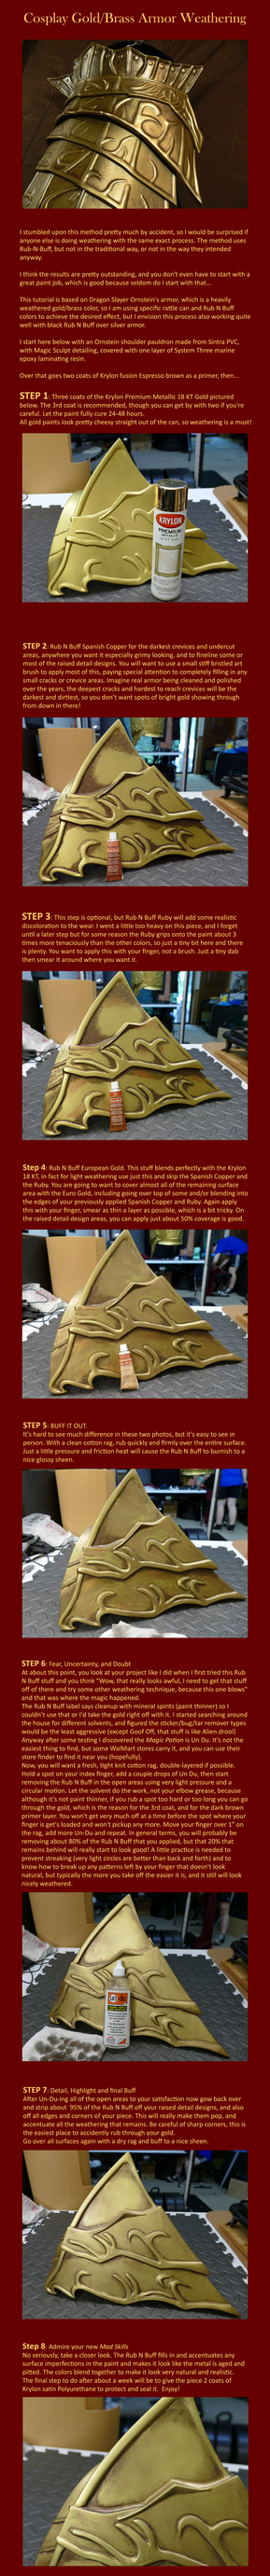 Cosplay Gold/Brass Armor Weathering Tutorial by Cosarmor